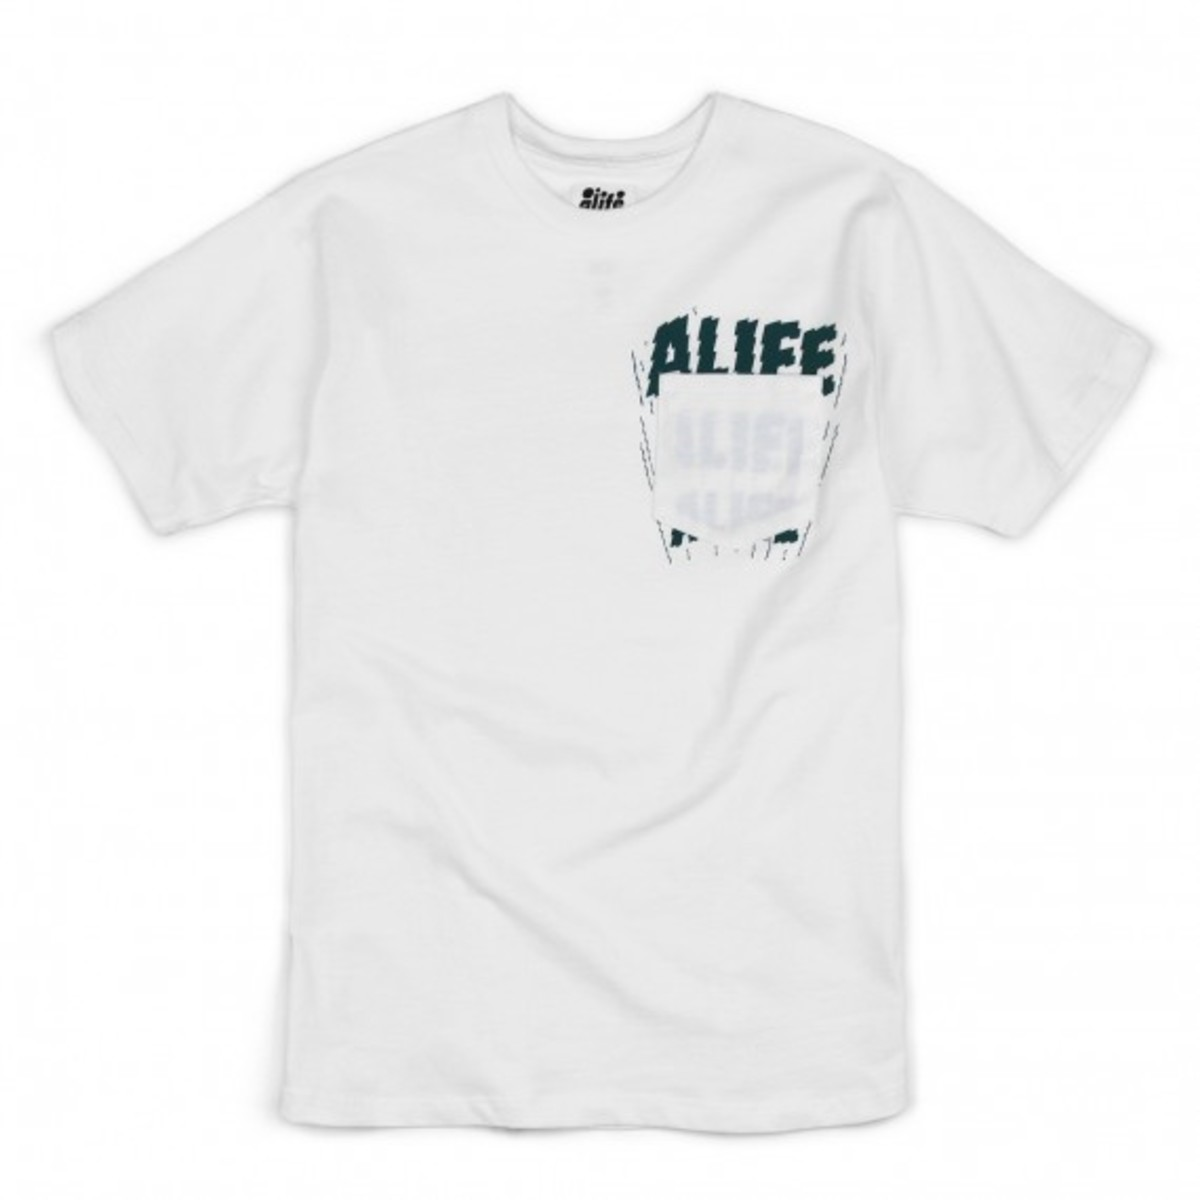 alife-tshirts-accessories-fall-2011-33